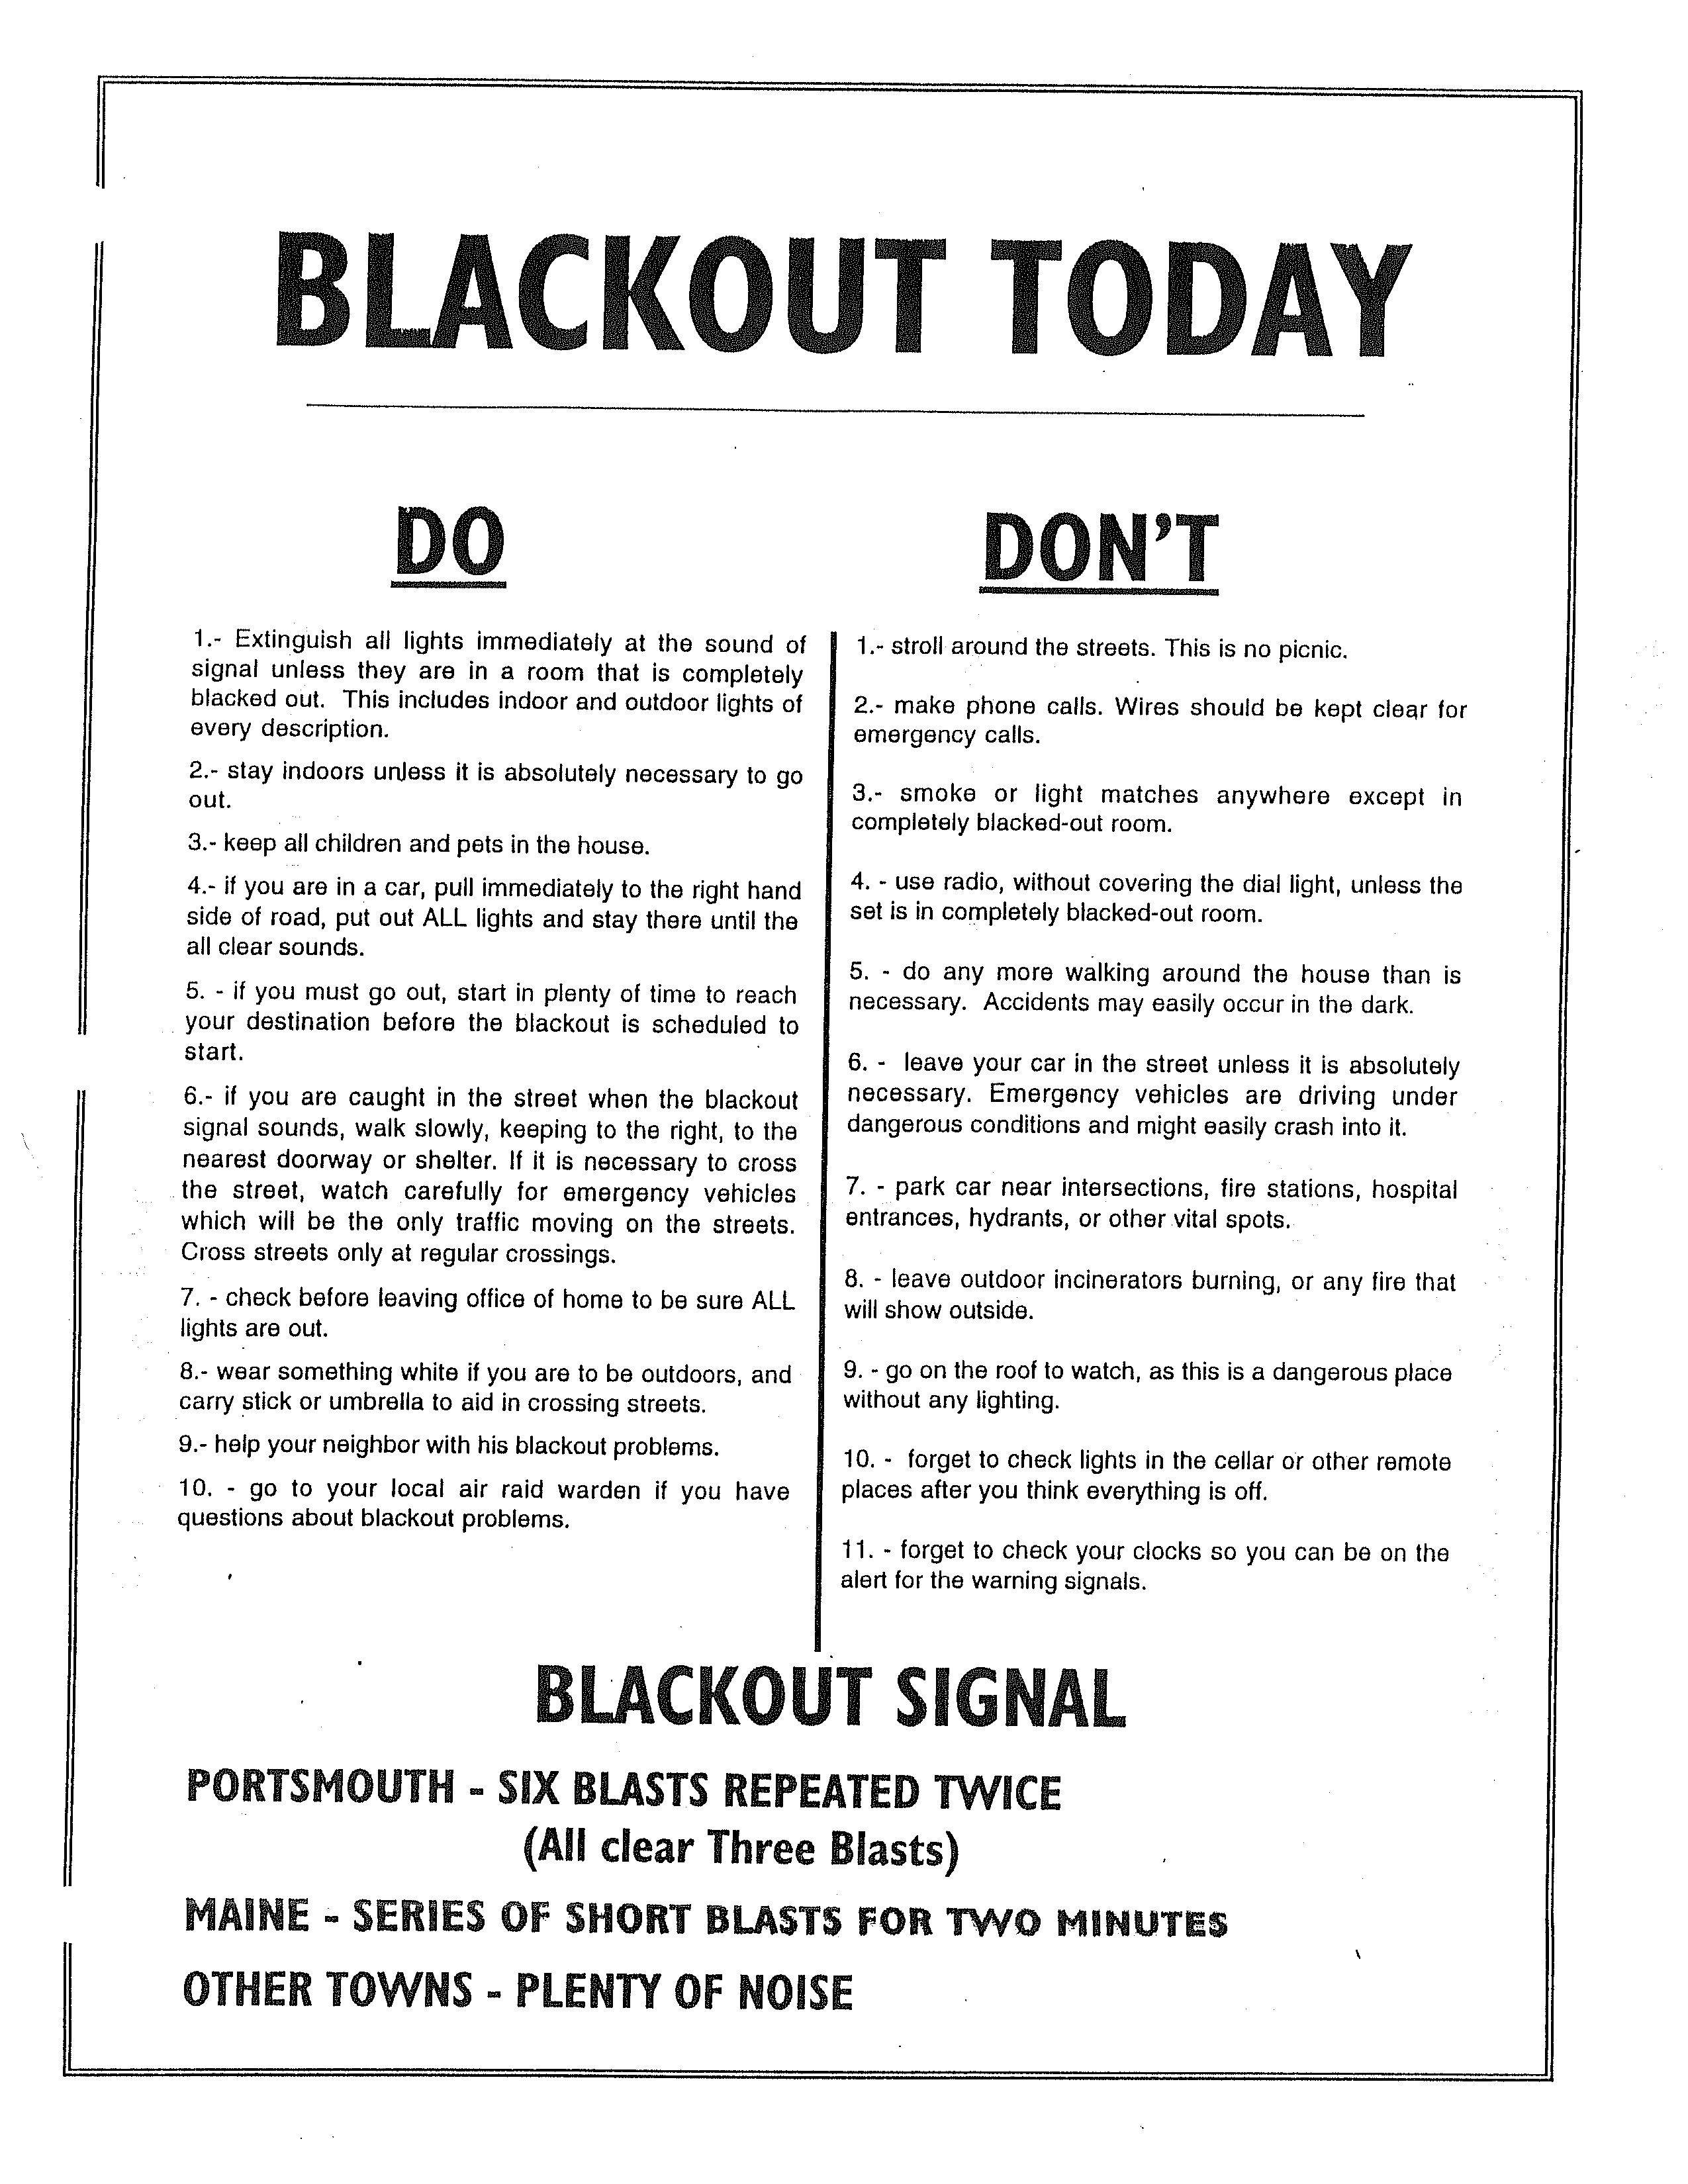 Blackout curtains ww2 - Rules For Bombing Blackouts